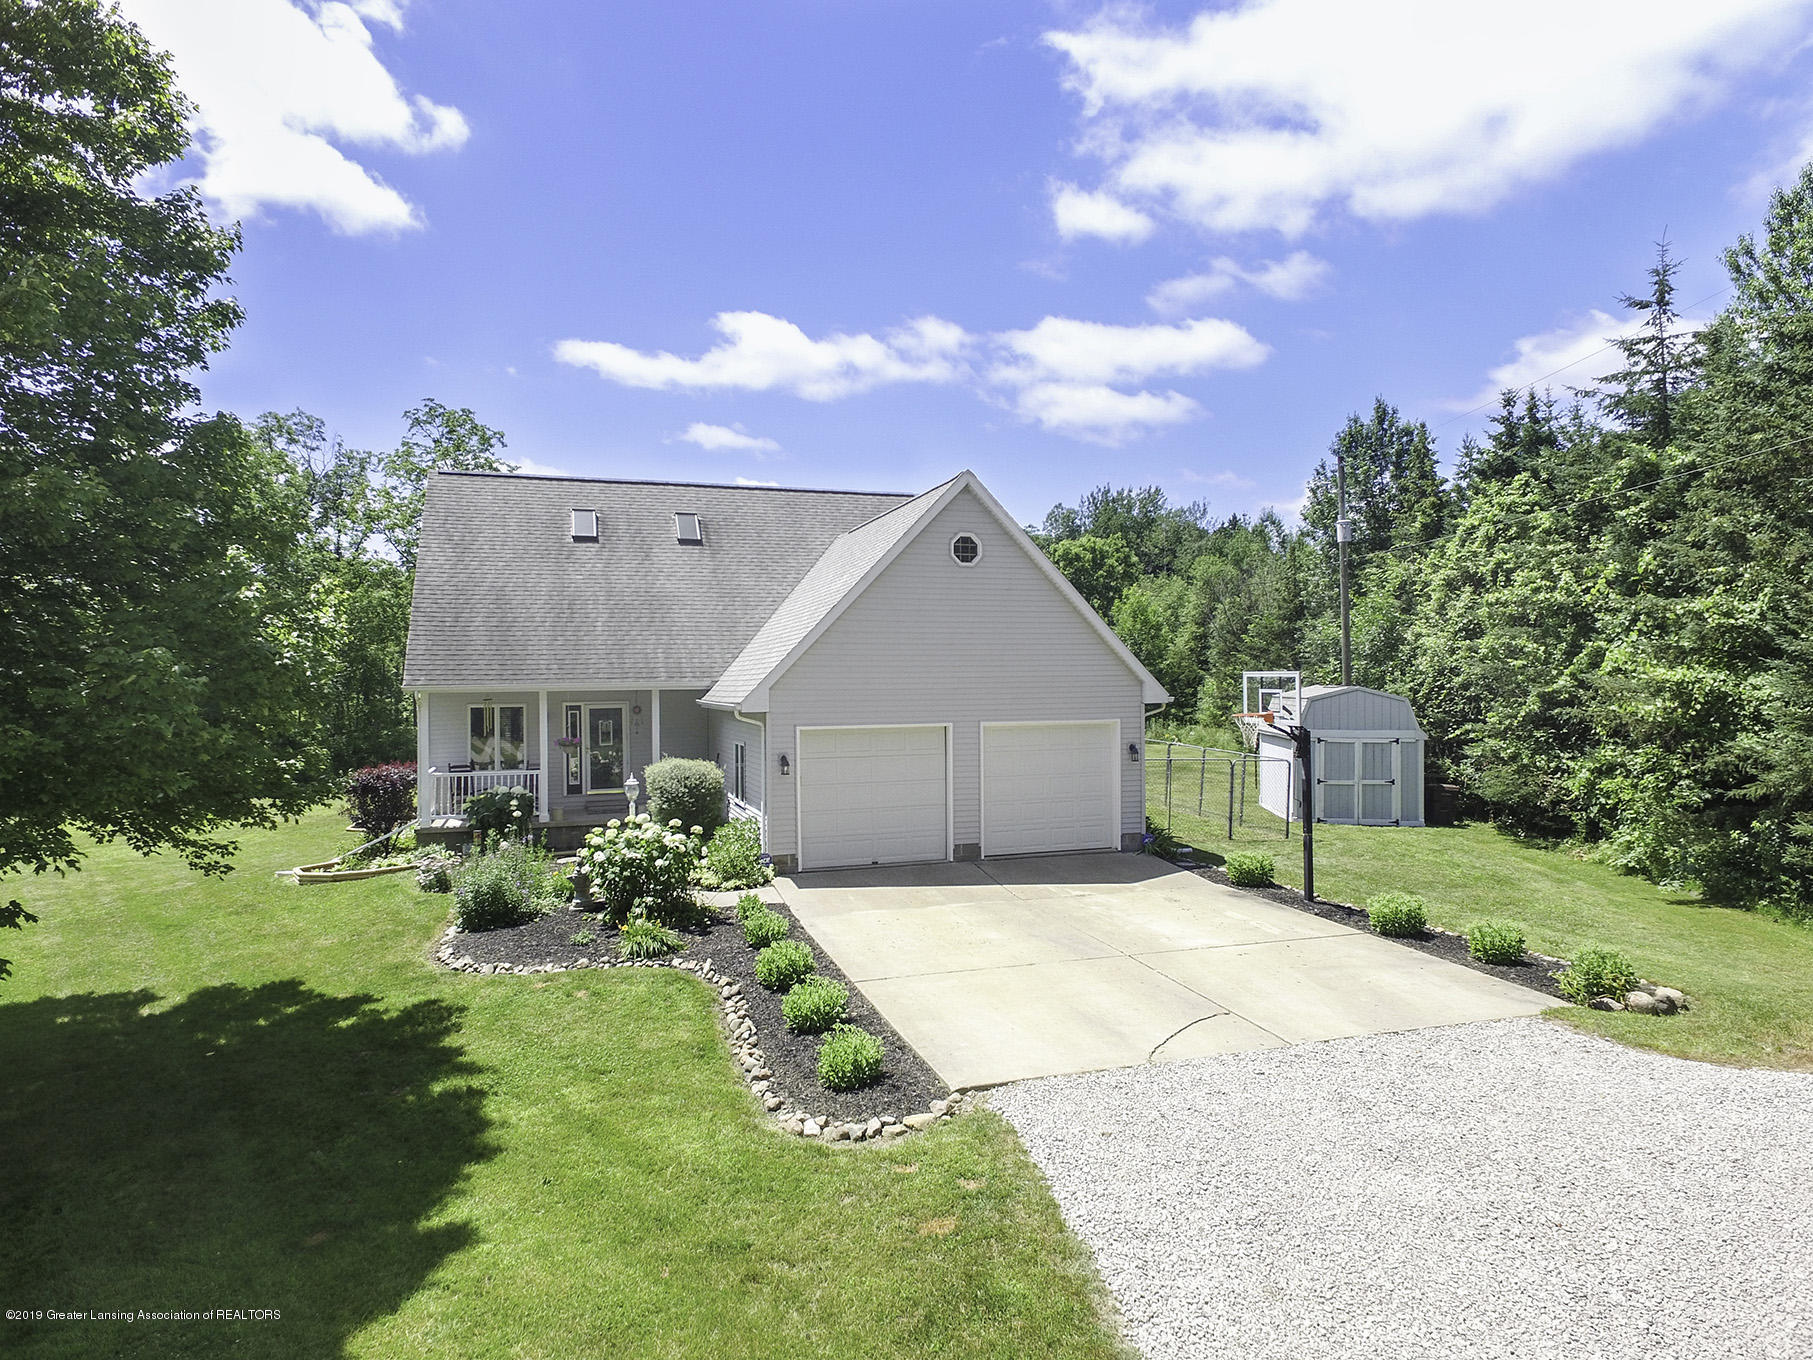 9088 Colby Lake Rd - Front - 1